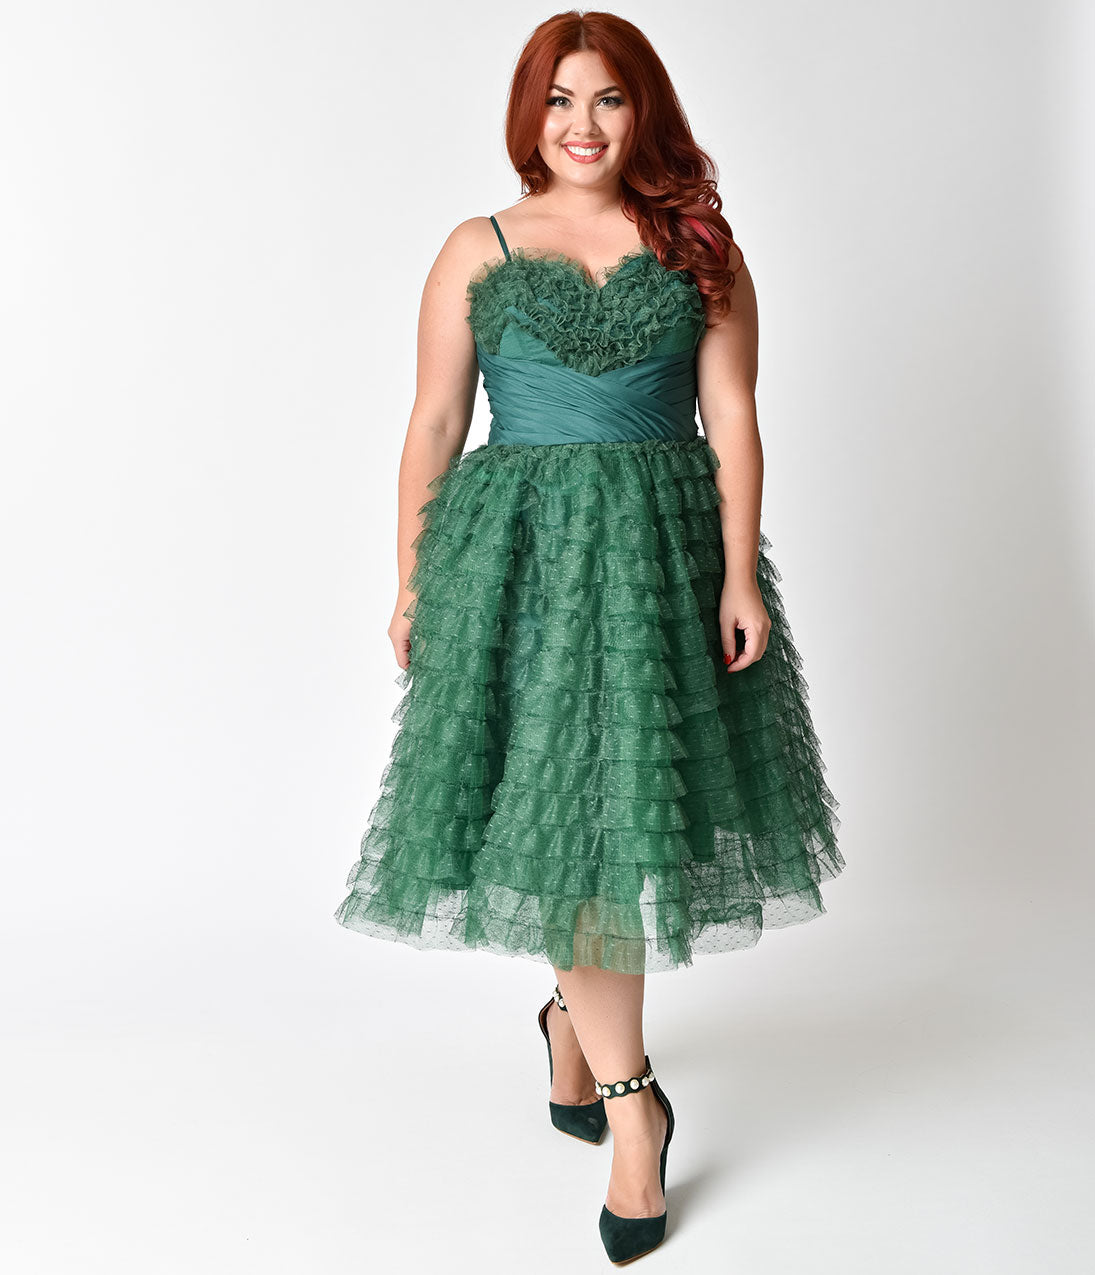 1950s Prom Dresses & Party Dresses Unique Vintage Plus Size 1950s Emerald Green Ruffled Tulle Sweetheart Cupcake Swing Dress $48.00 AT vintagedancer.com